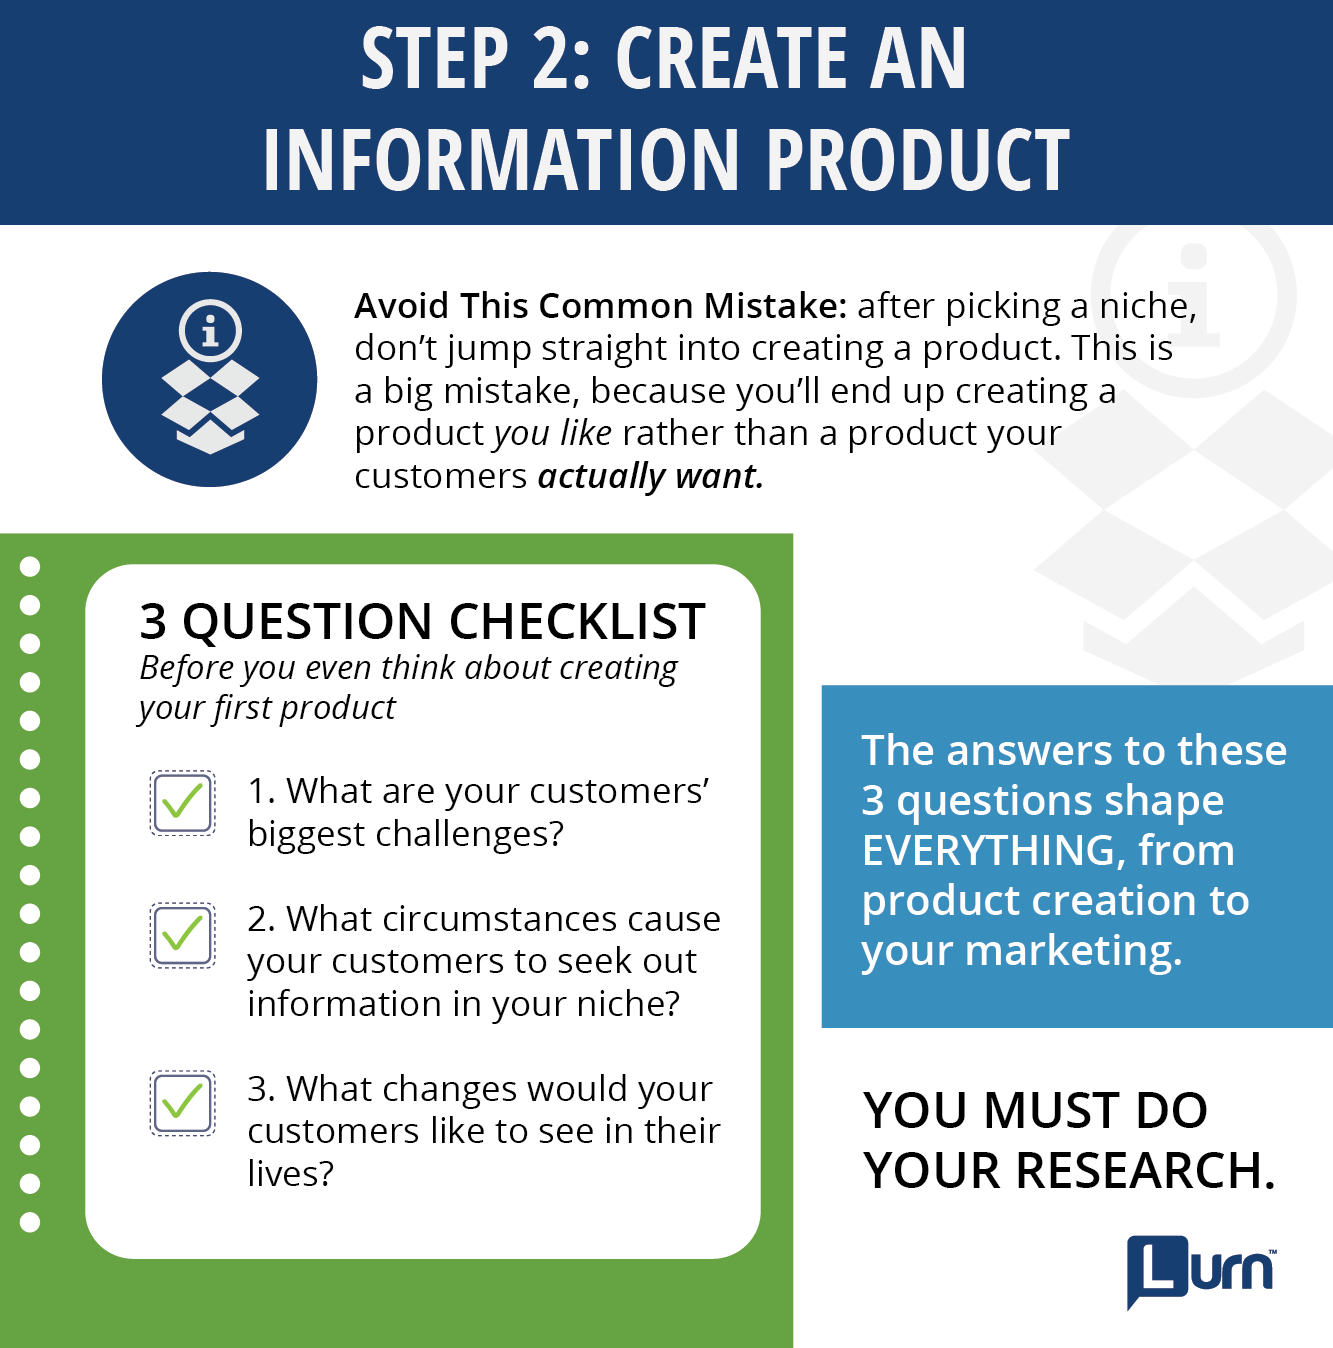 Step 2: Create An Information Product